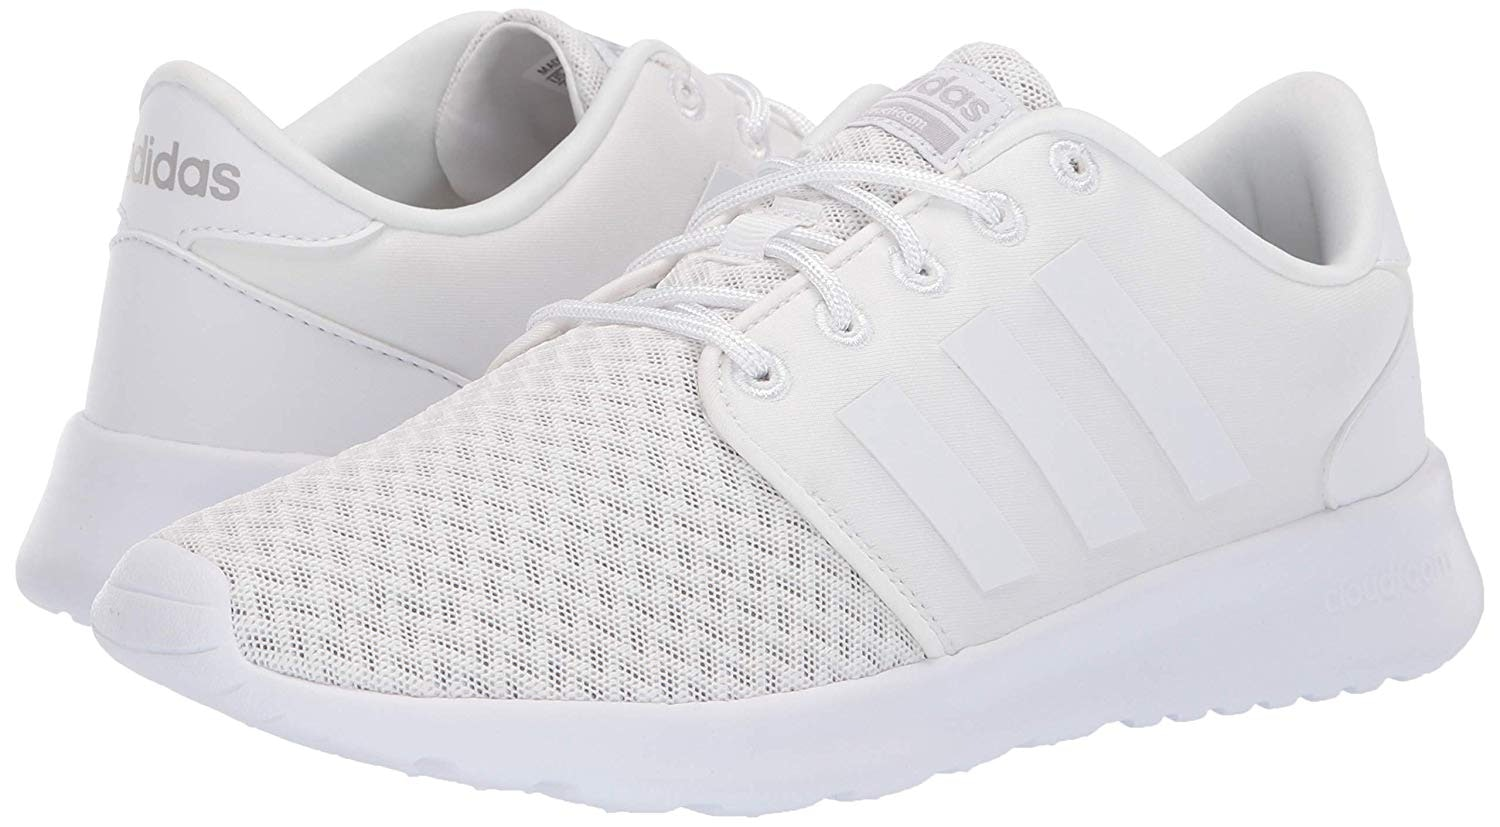 adidas womens shoes with memory foam